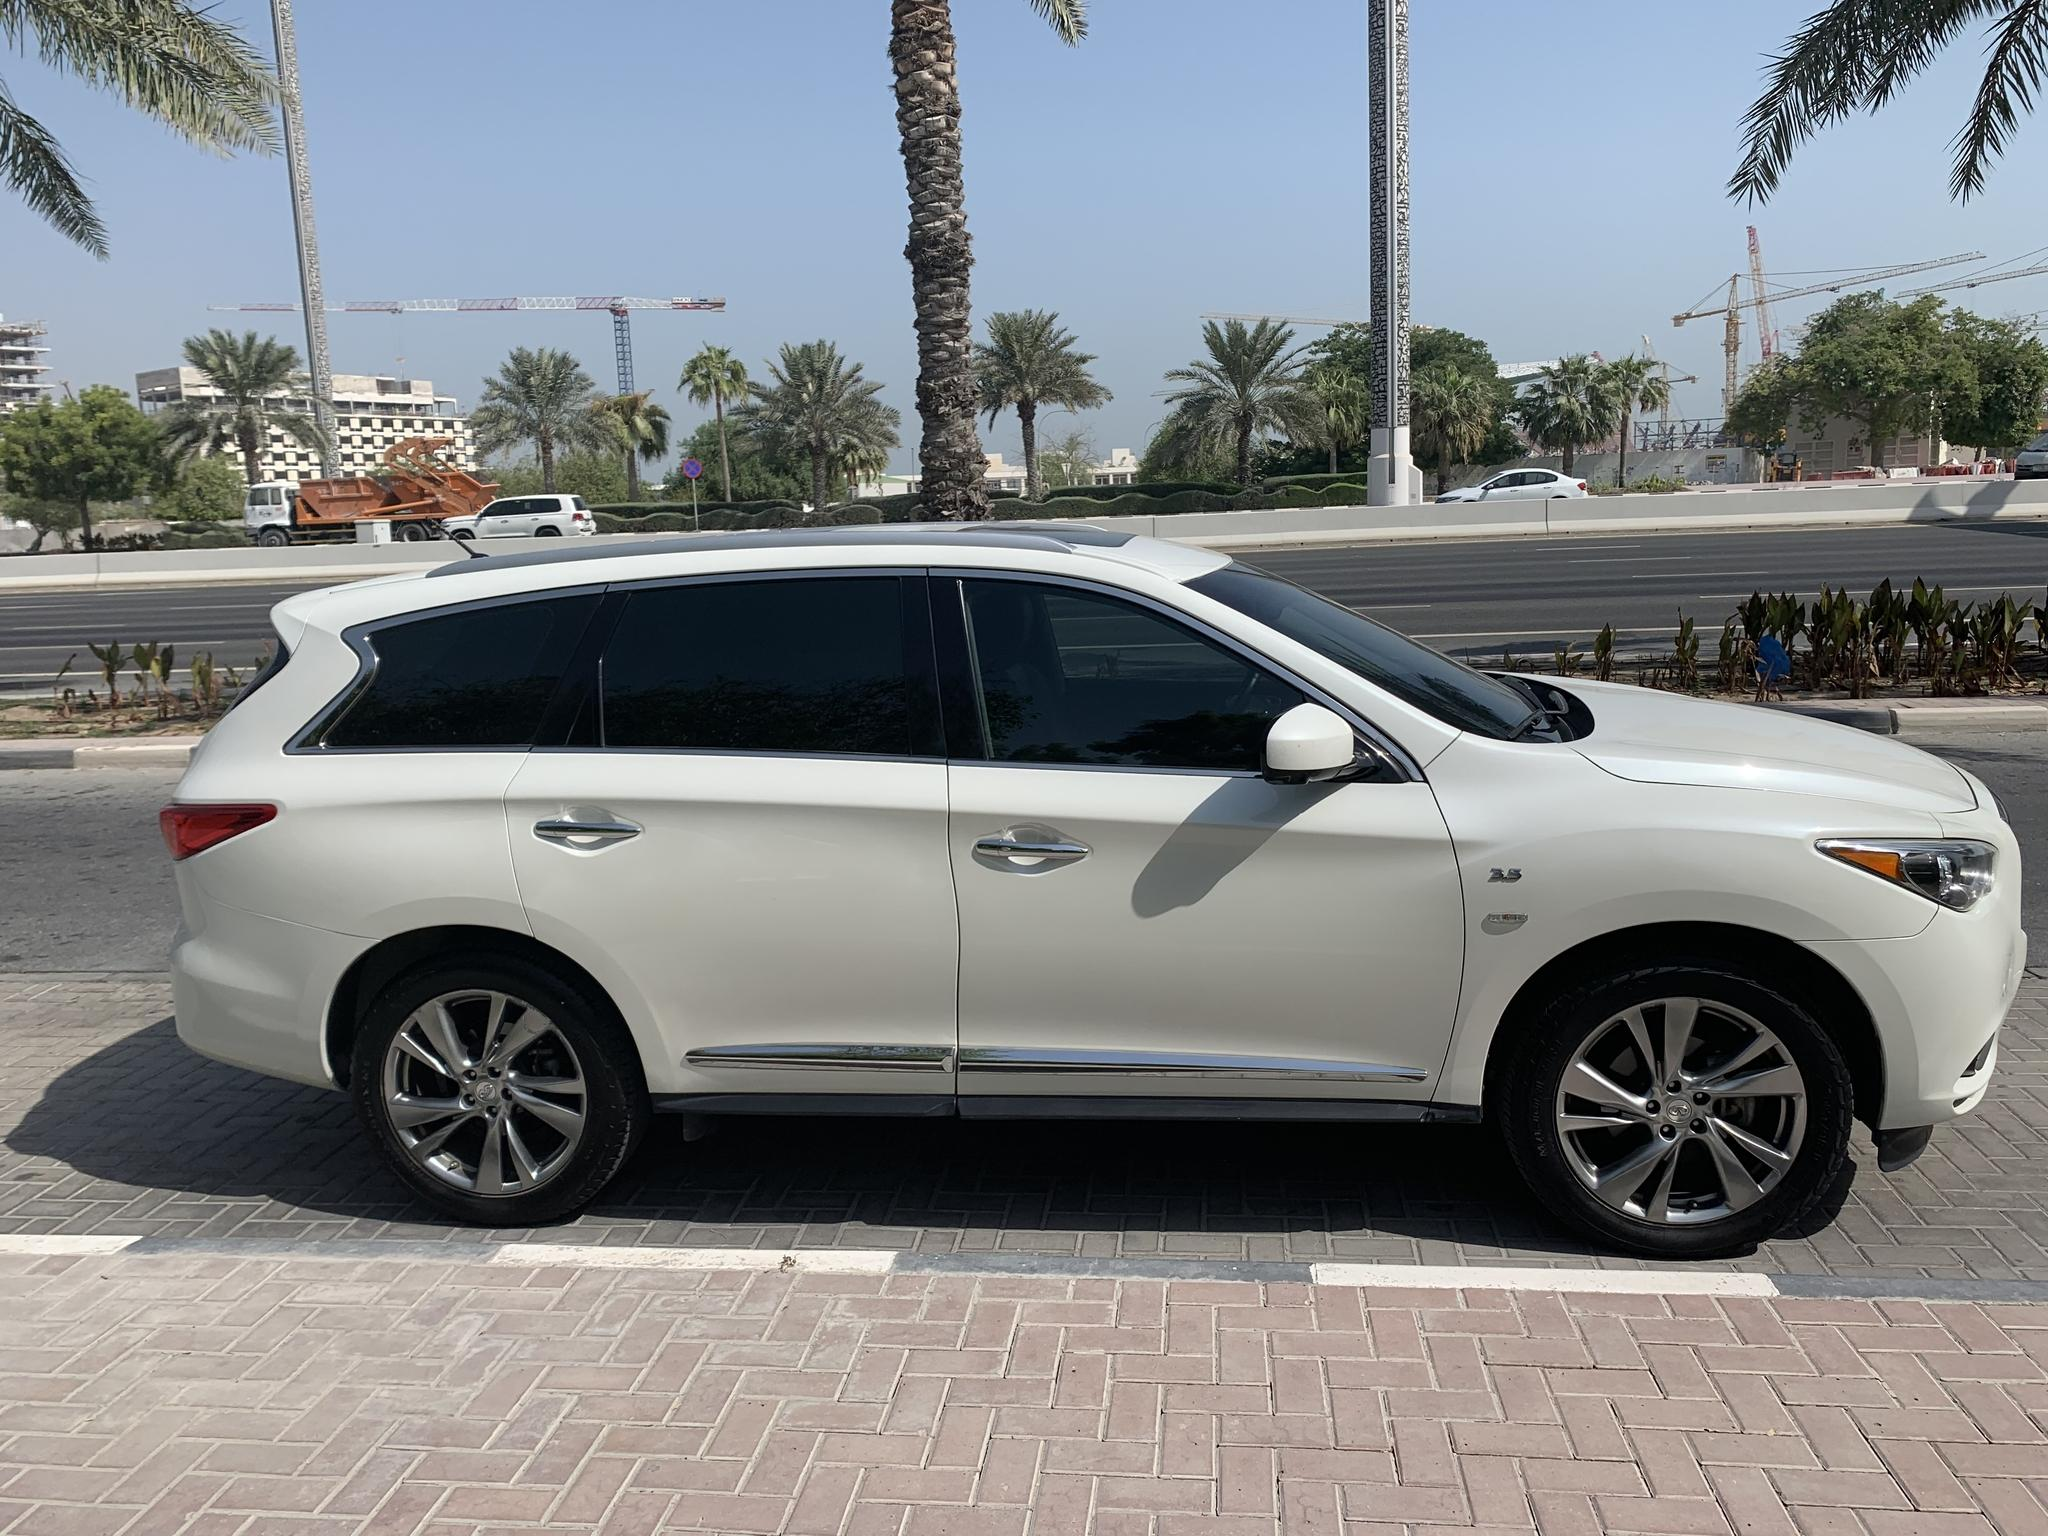 Infinity QX60 in Excellent Condition, First Owner